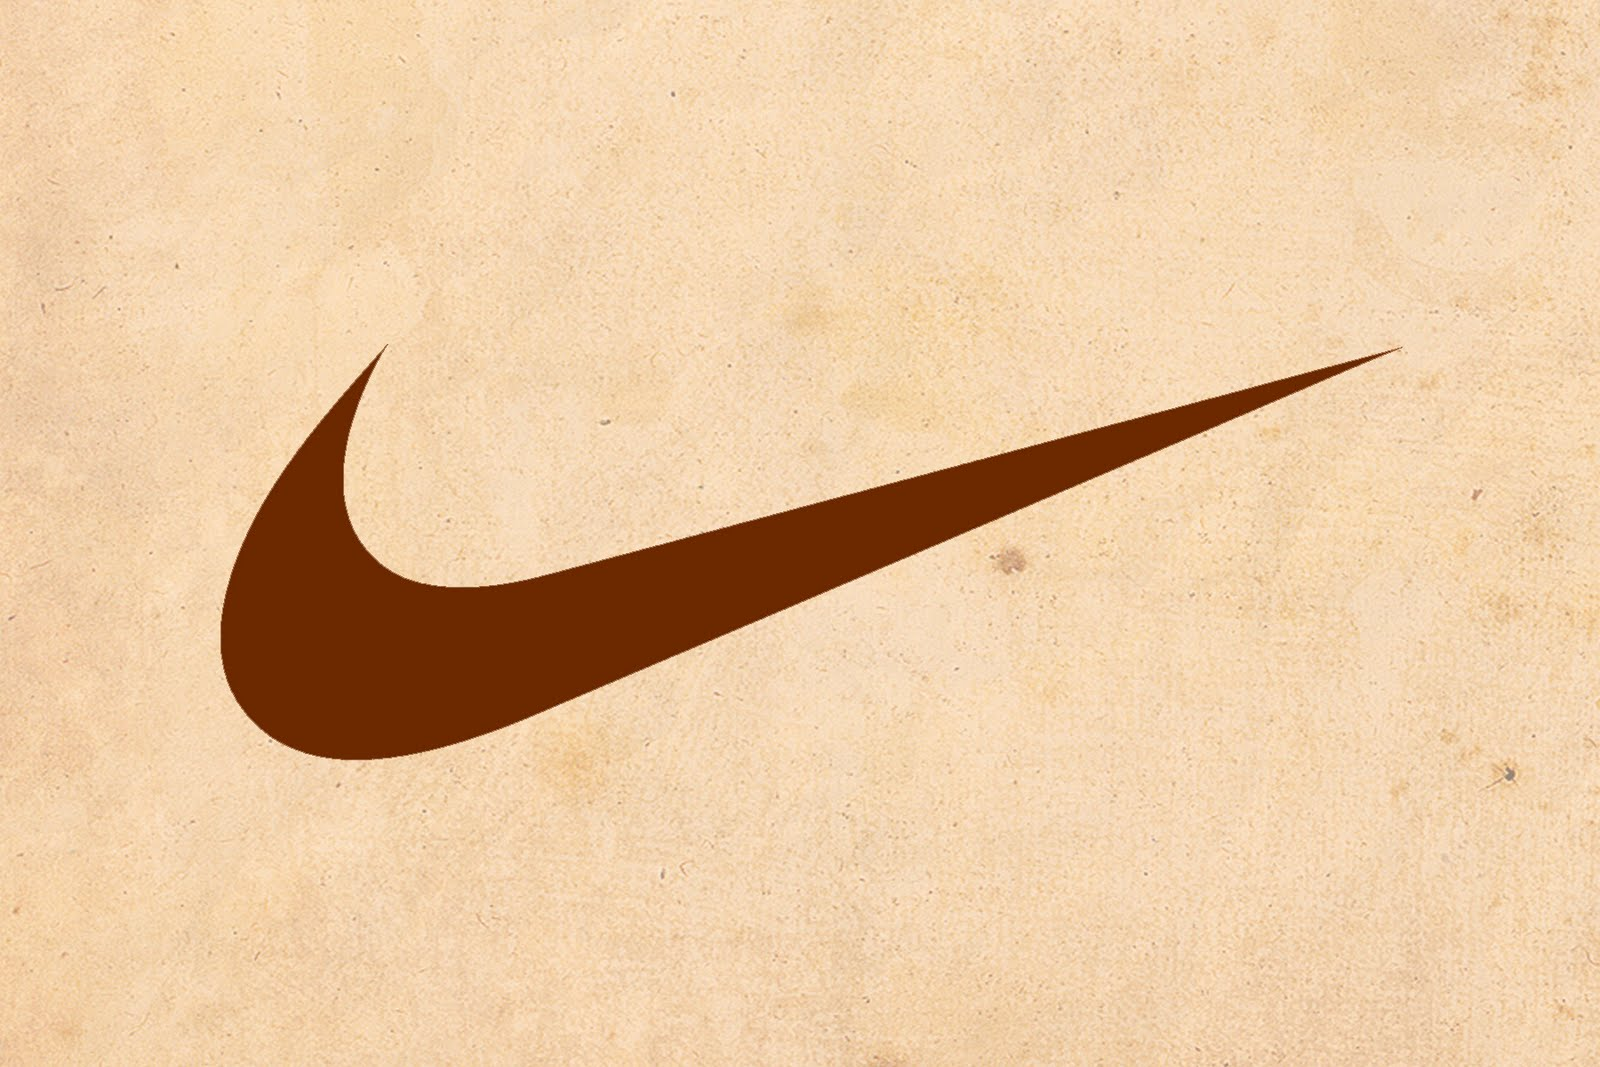 Nike Swoosh Wallpapers: Logo Design Pictures